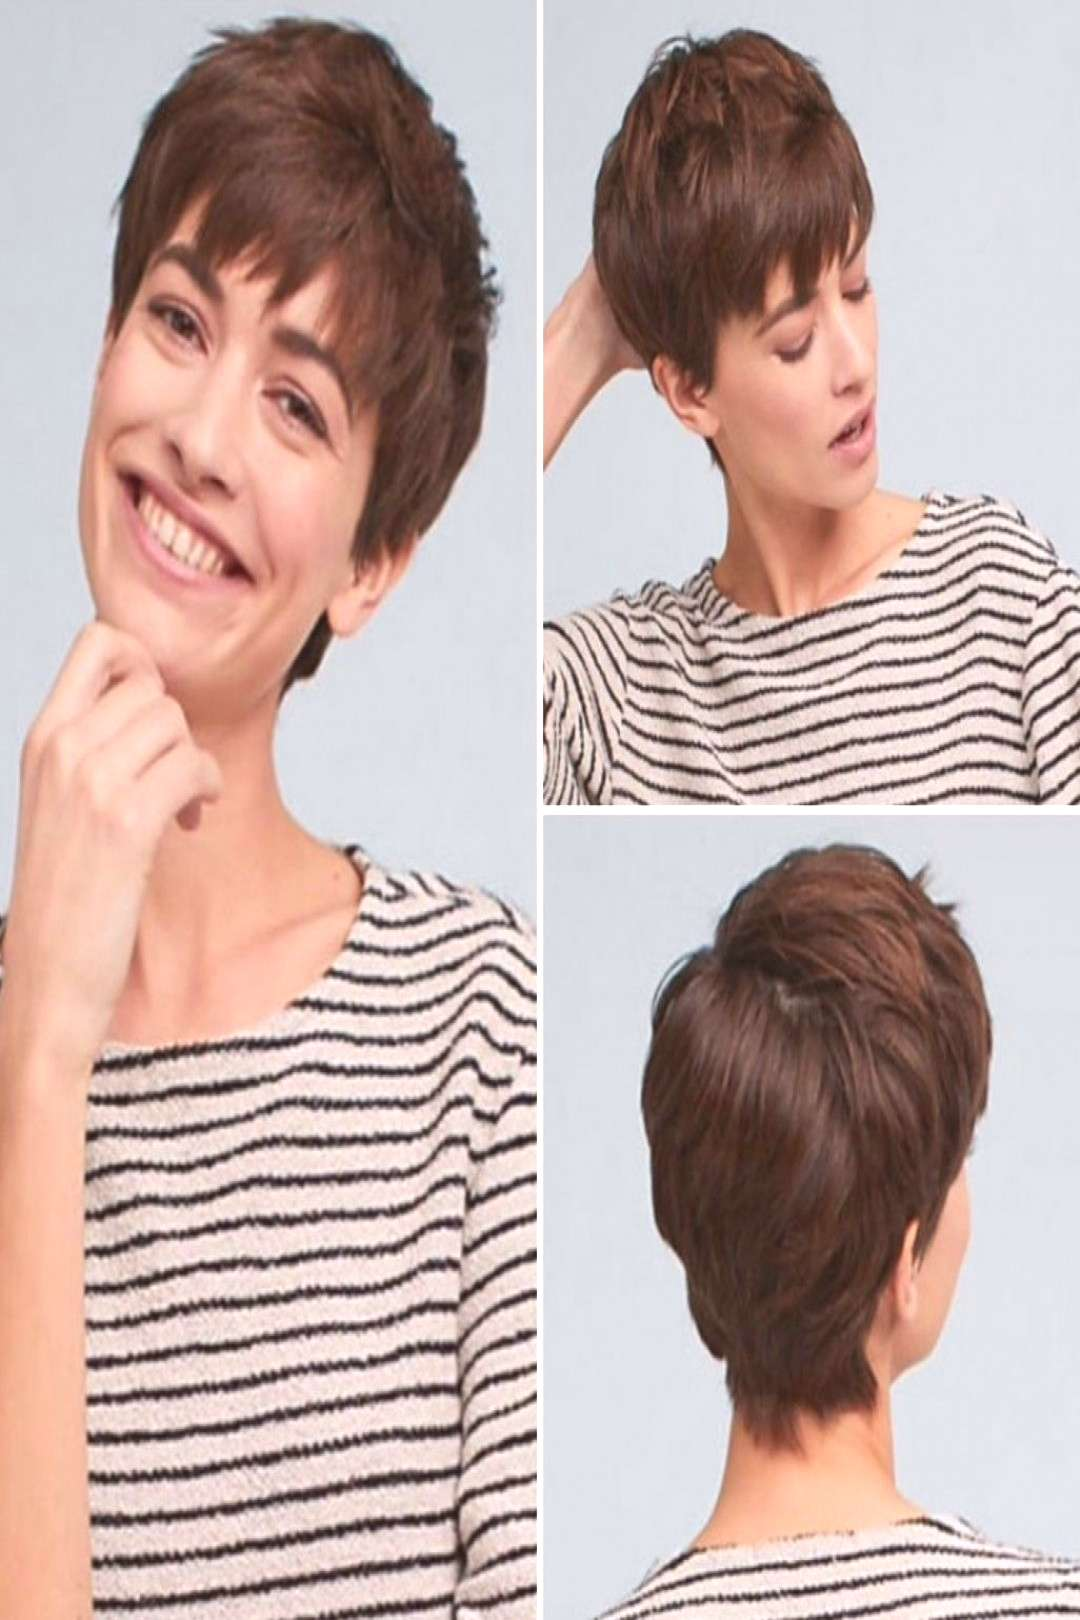 Top 15 Trends In Pixie Cut Oval Face To Watch   pixie cut oval face Please check more!! Awesome Top